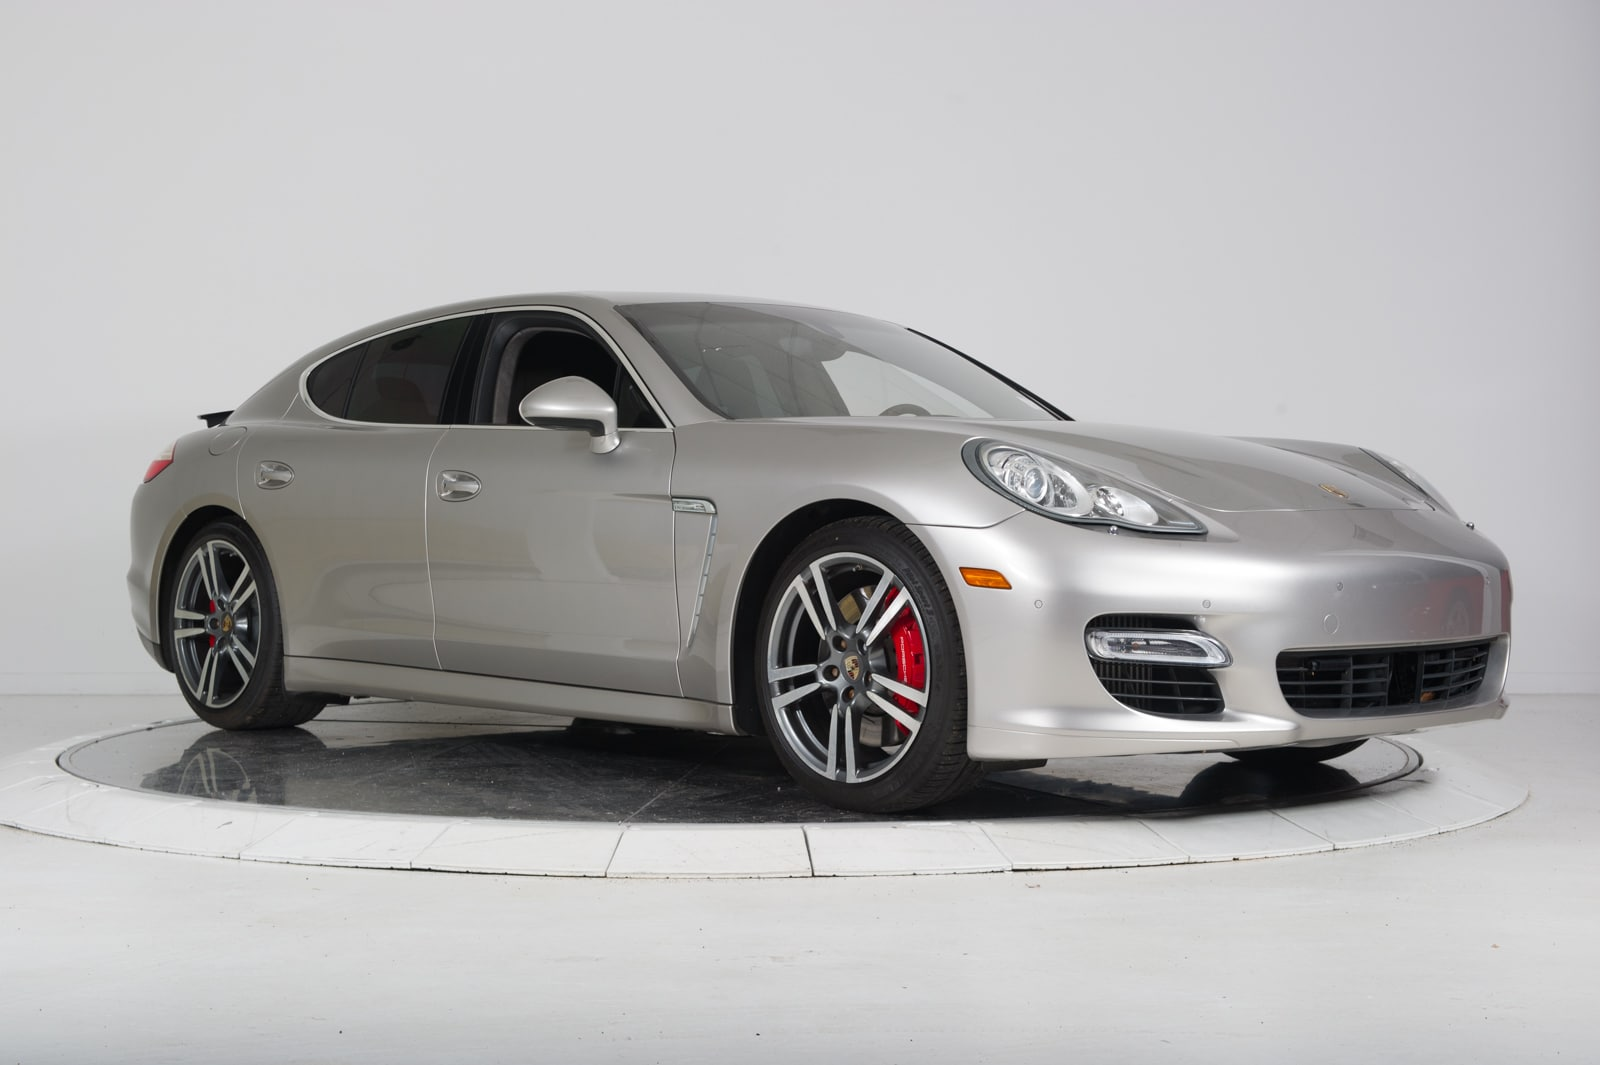 used 2011 porsche panamera turbo for sale plainview near long island ny vin wp0ac2a75bl090508. Black Bedroom Furniture Sets. Home Design Ideas